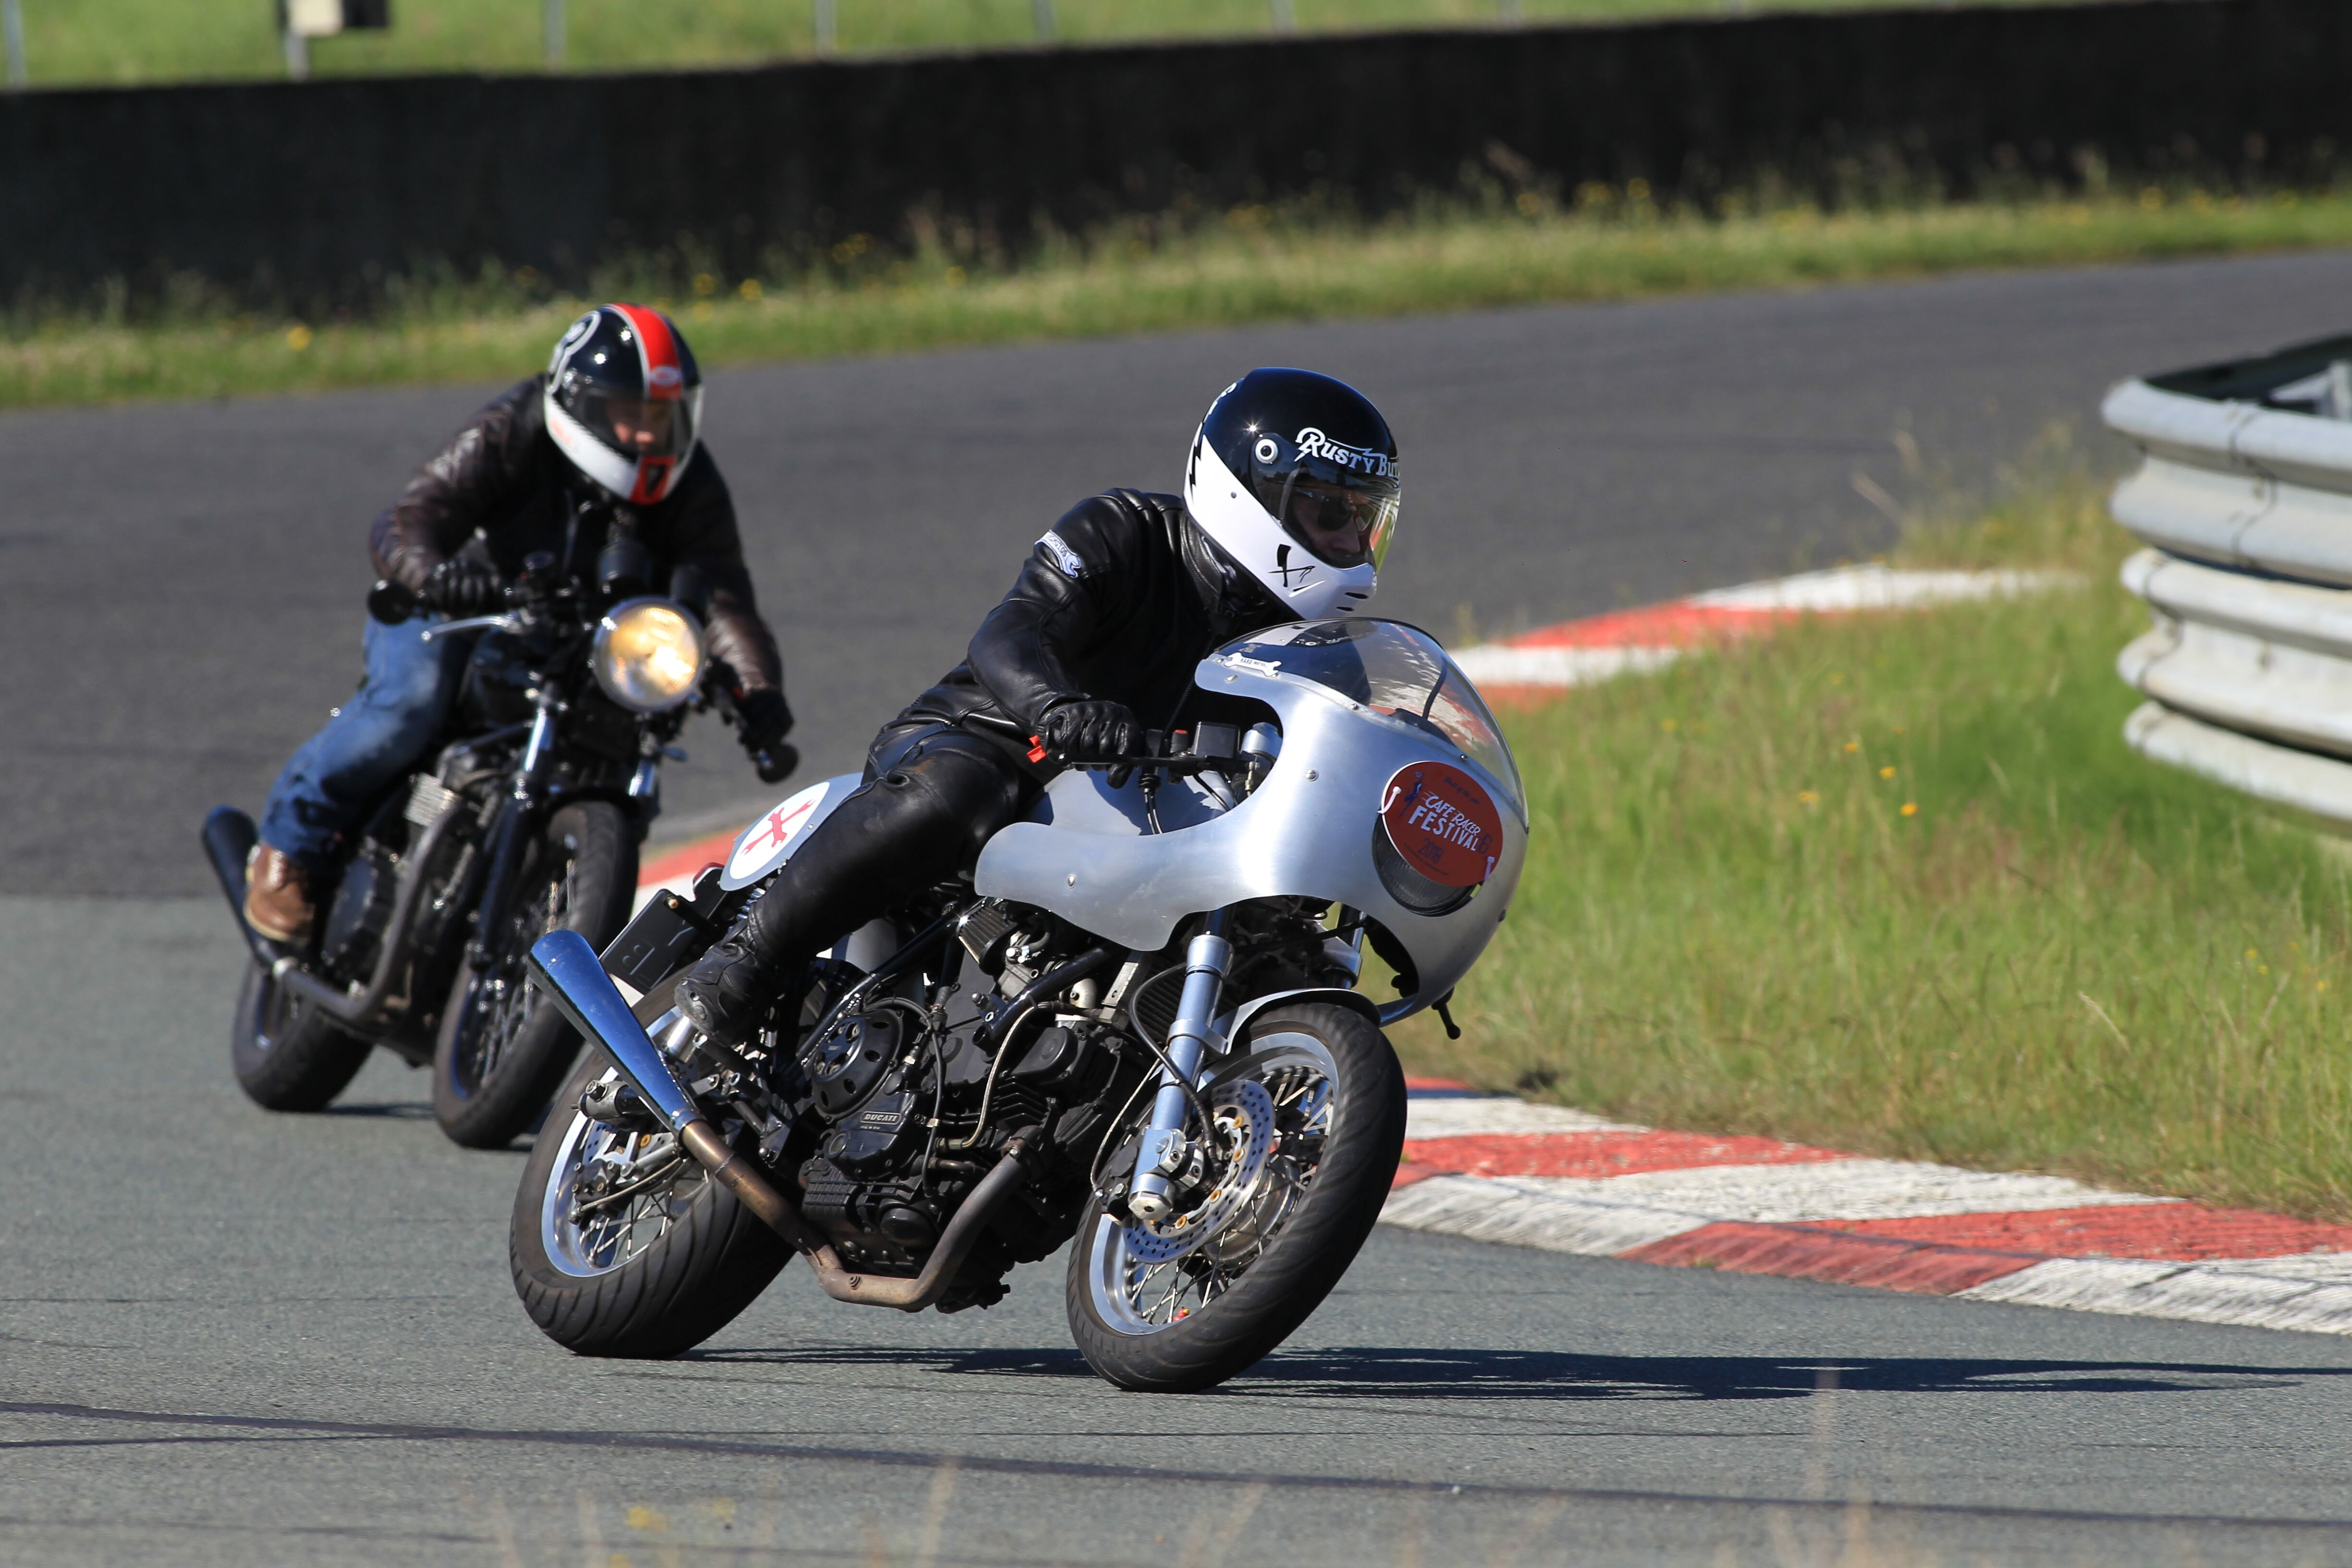 Cafe Racer Festival 2016 – 2019 on the Ducati Imola caferacer